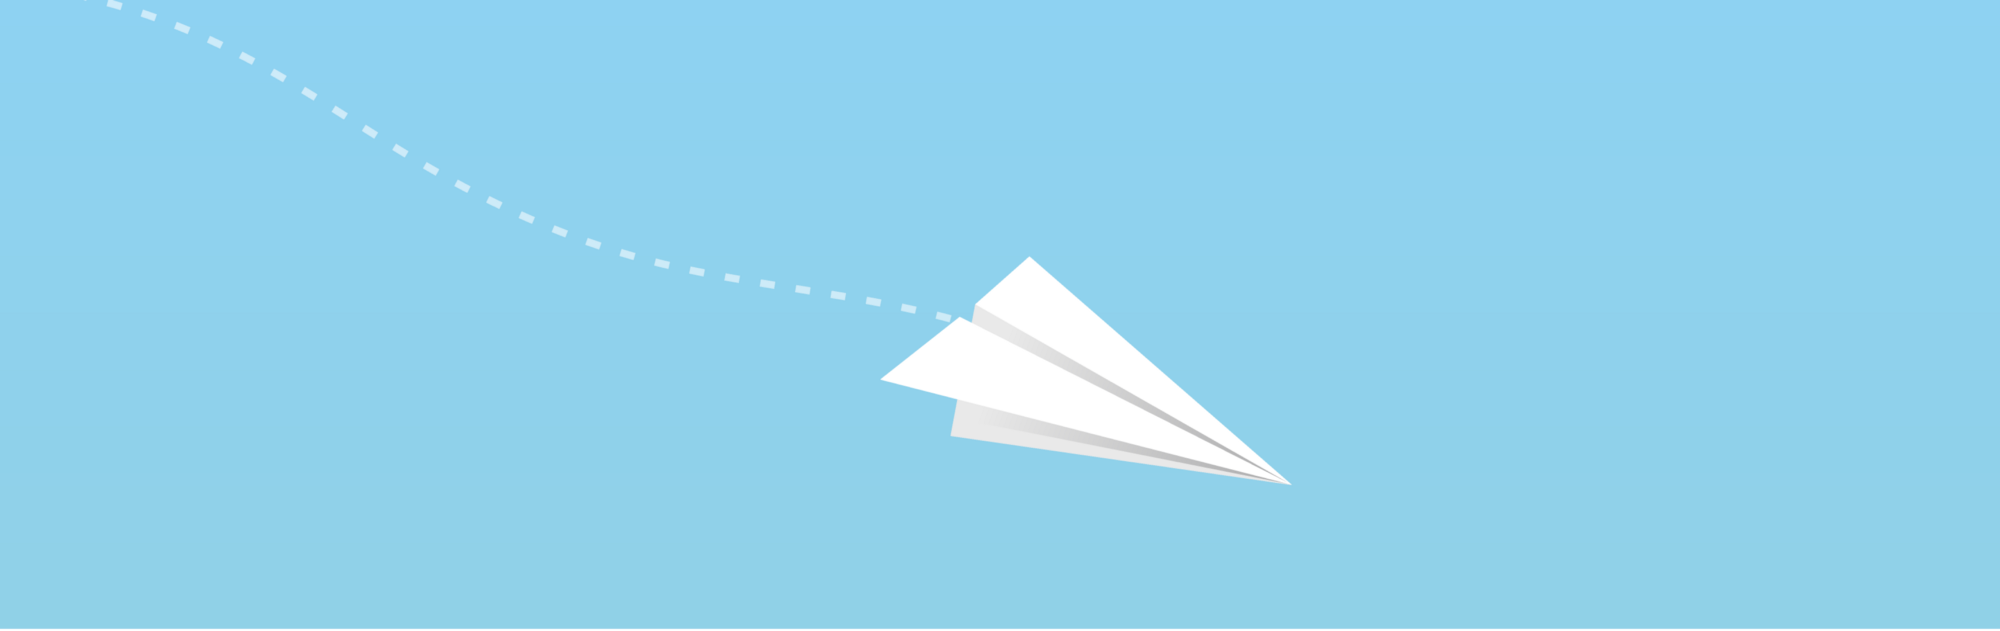 An illustration of a paper airplane drifting downwards.